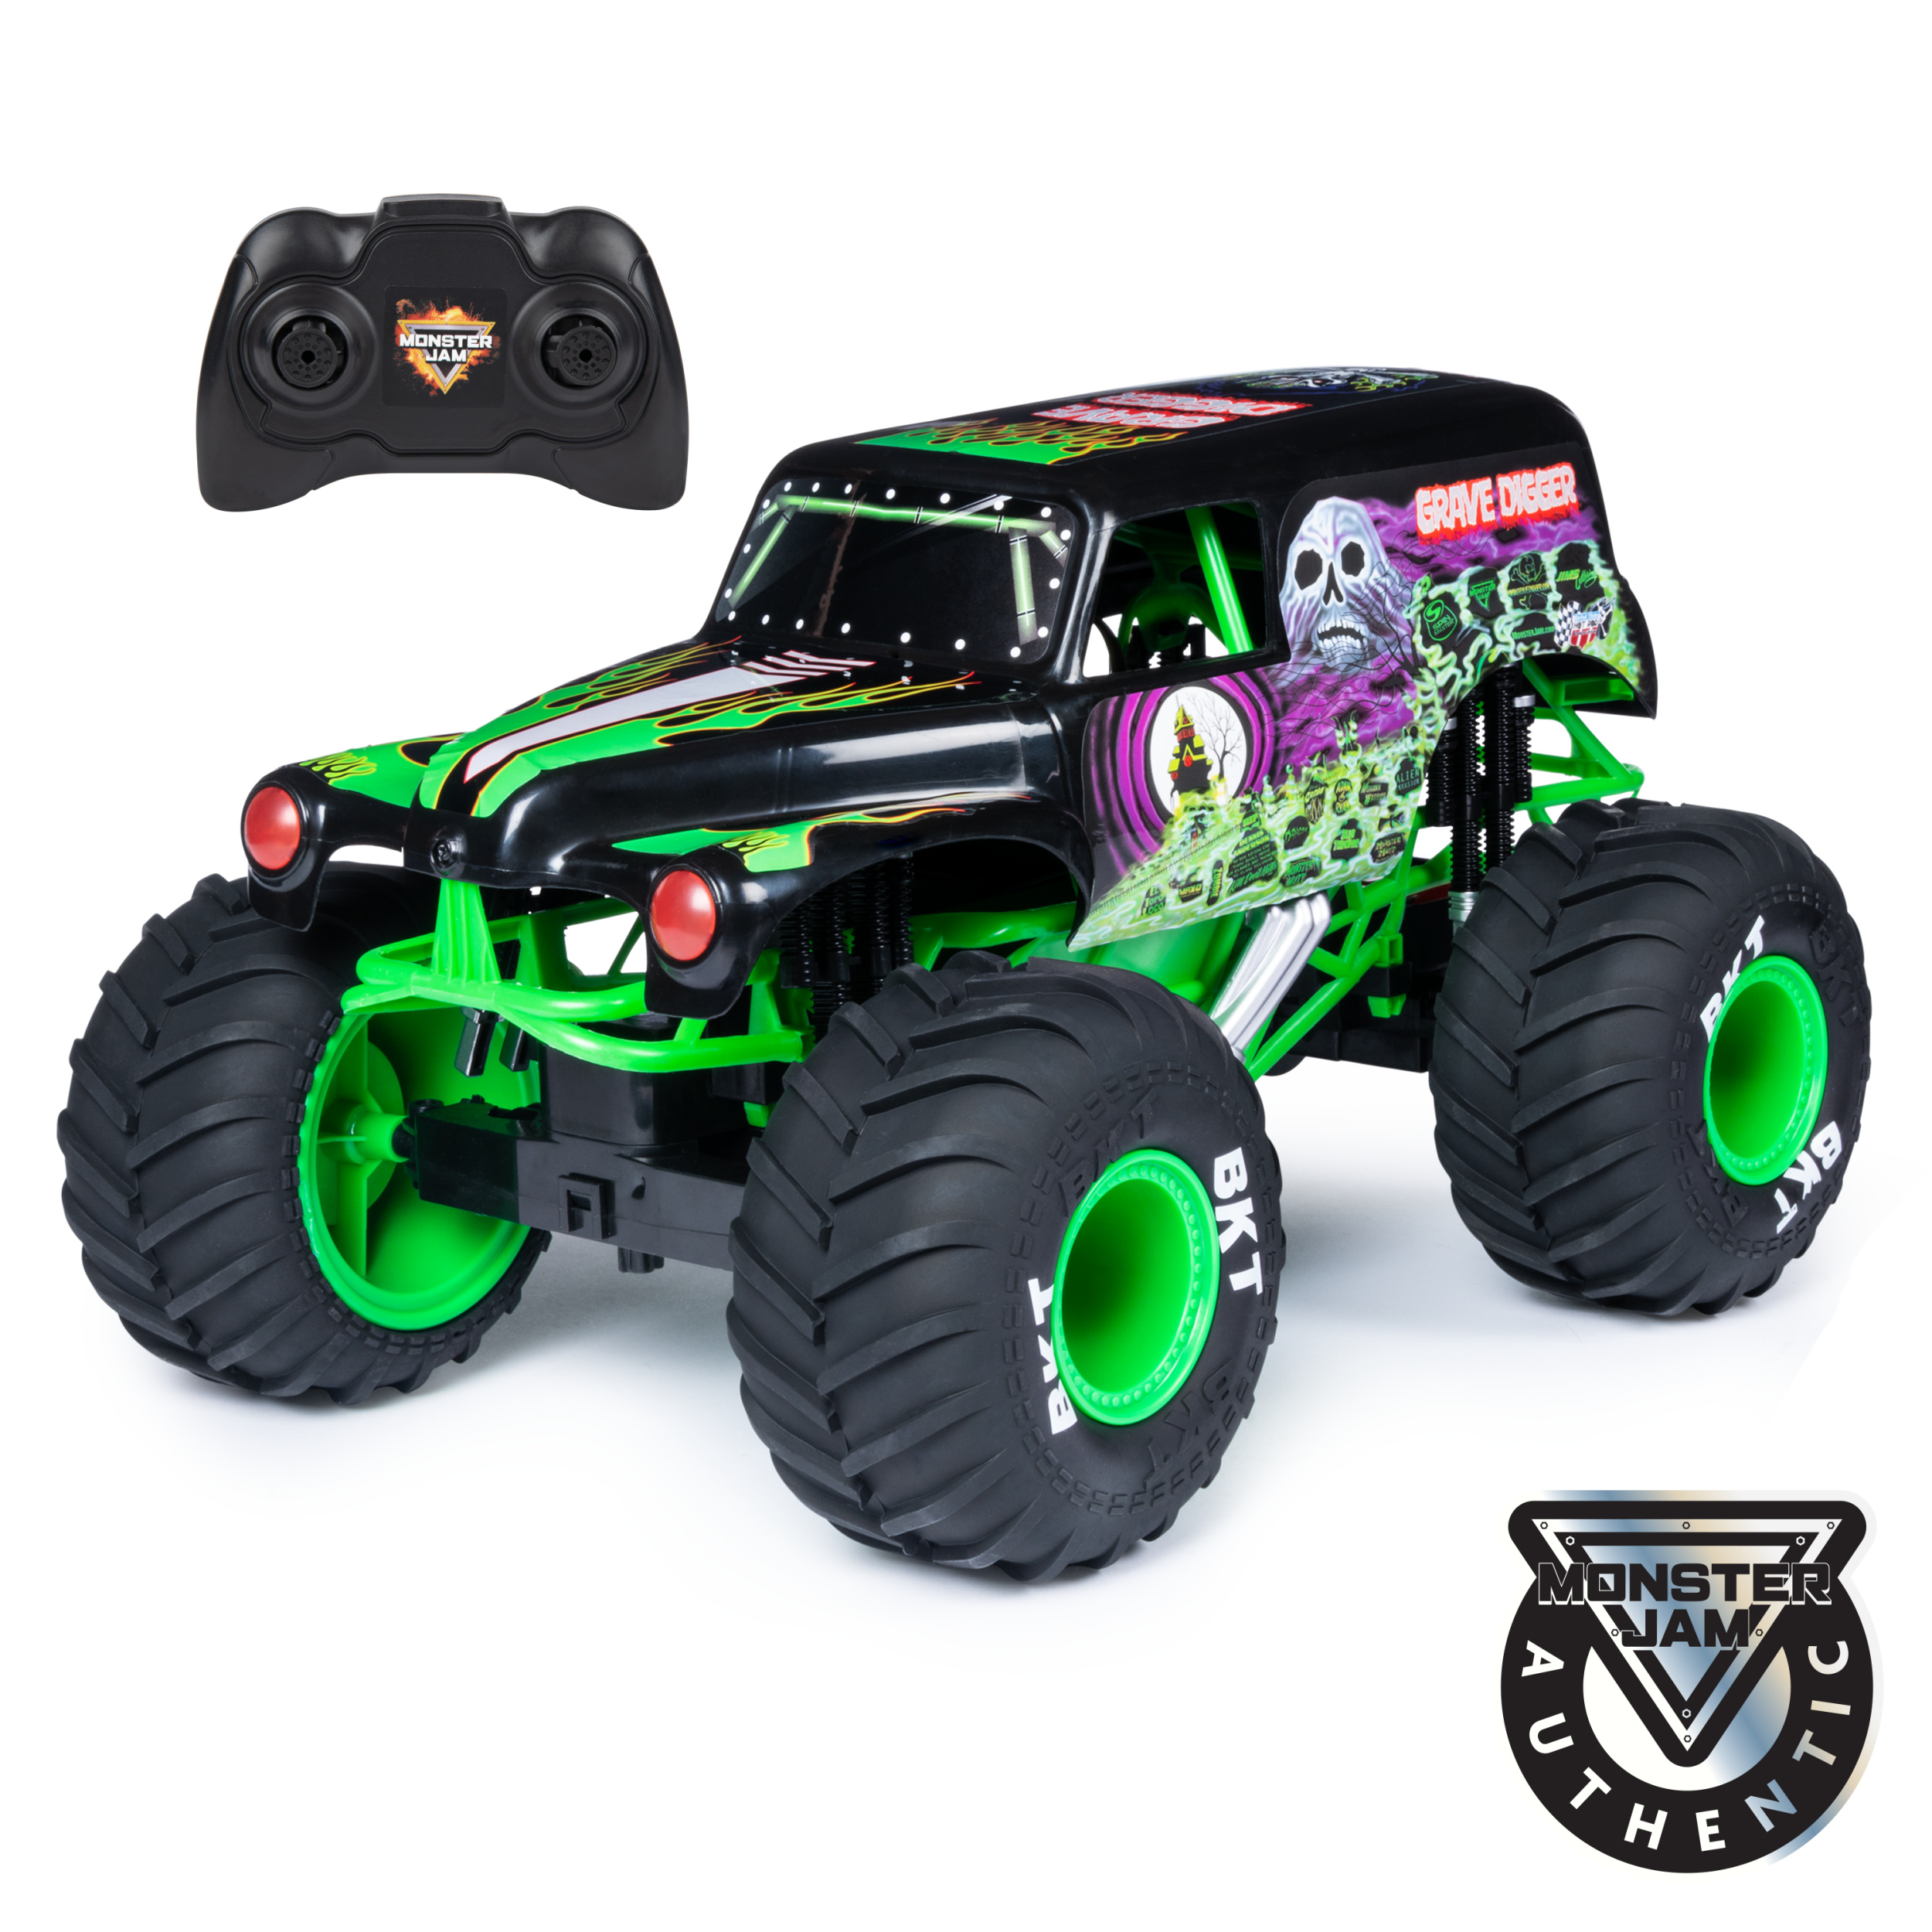 Monster Jam, Official Grave Digger Remote Control Monster Truck, 1:10 Scale, with lights and sounds, for Ages... by Spin Master Ltd